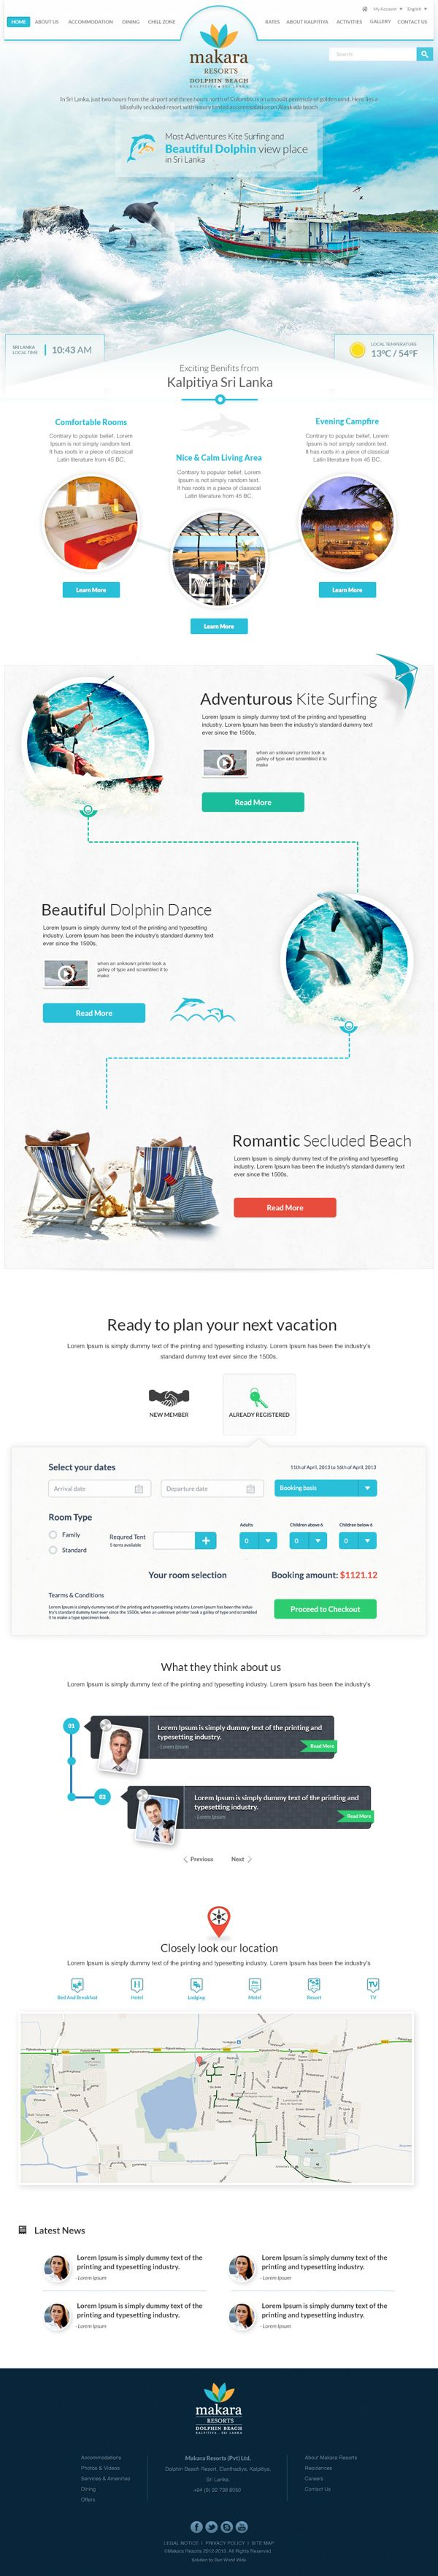 Makara Resorts - Kalpitiya (Revamp) by Yashi, via Behance